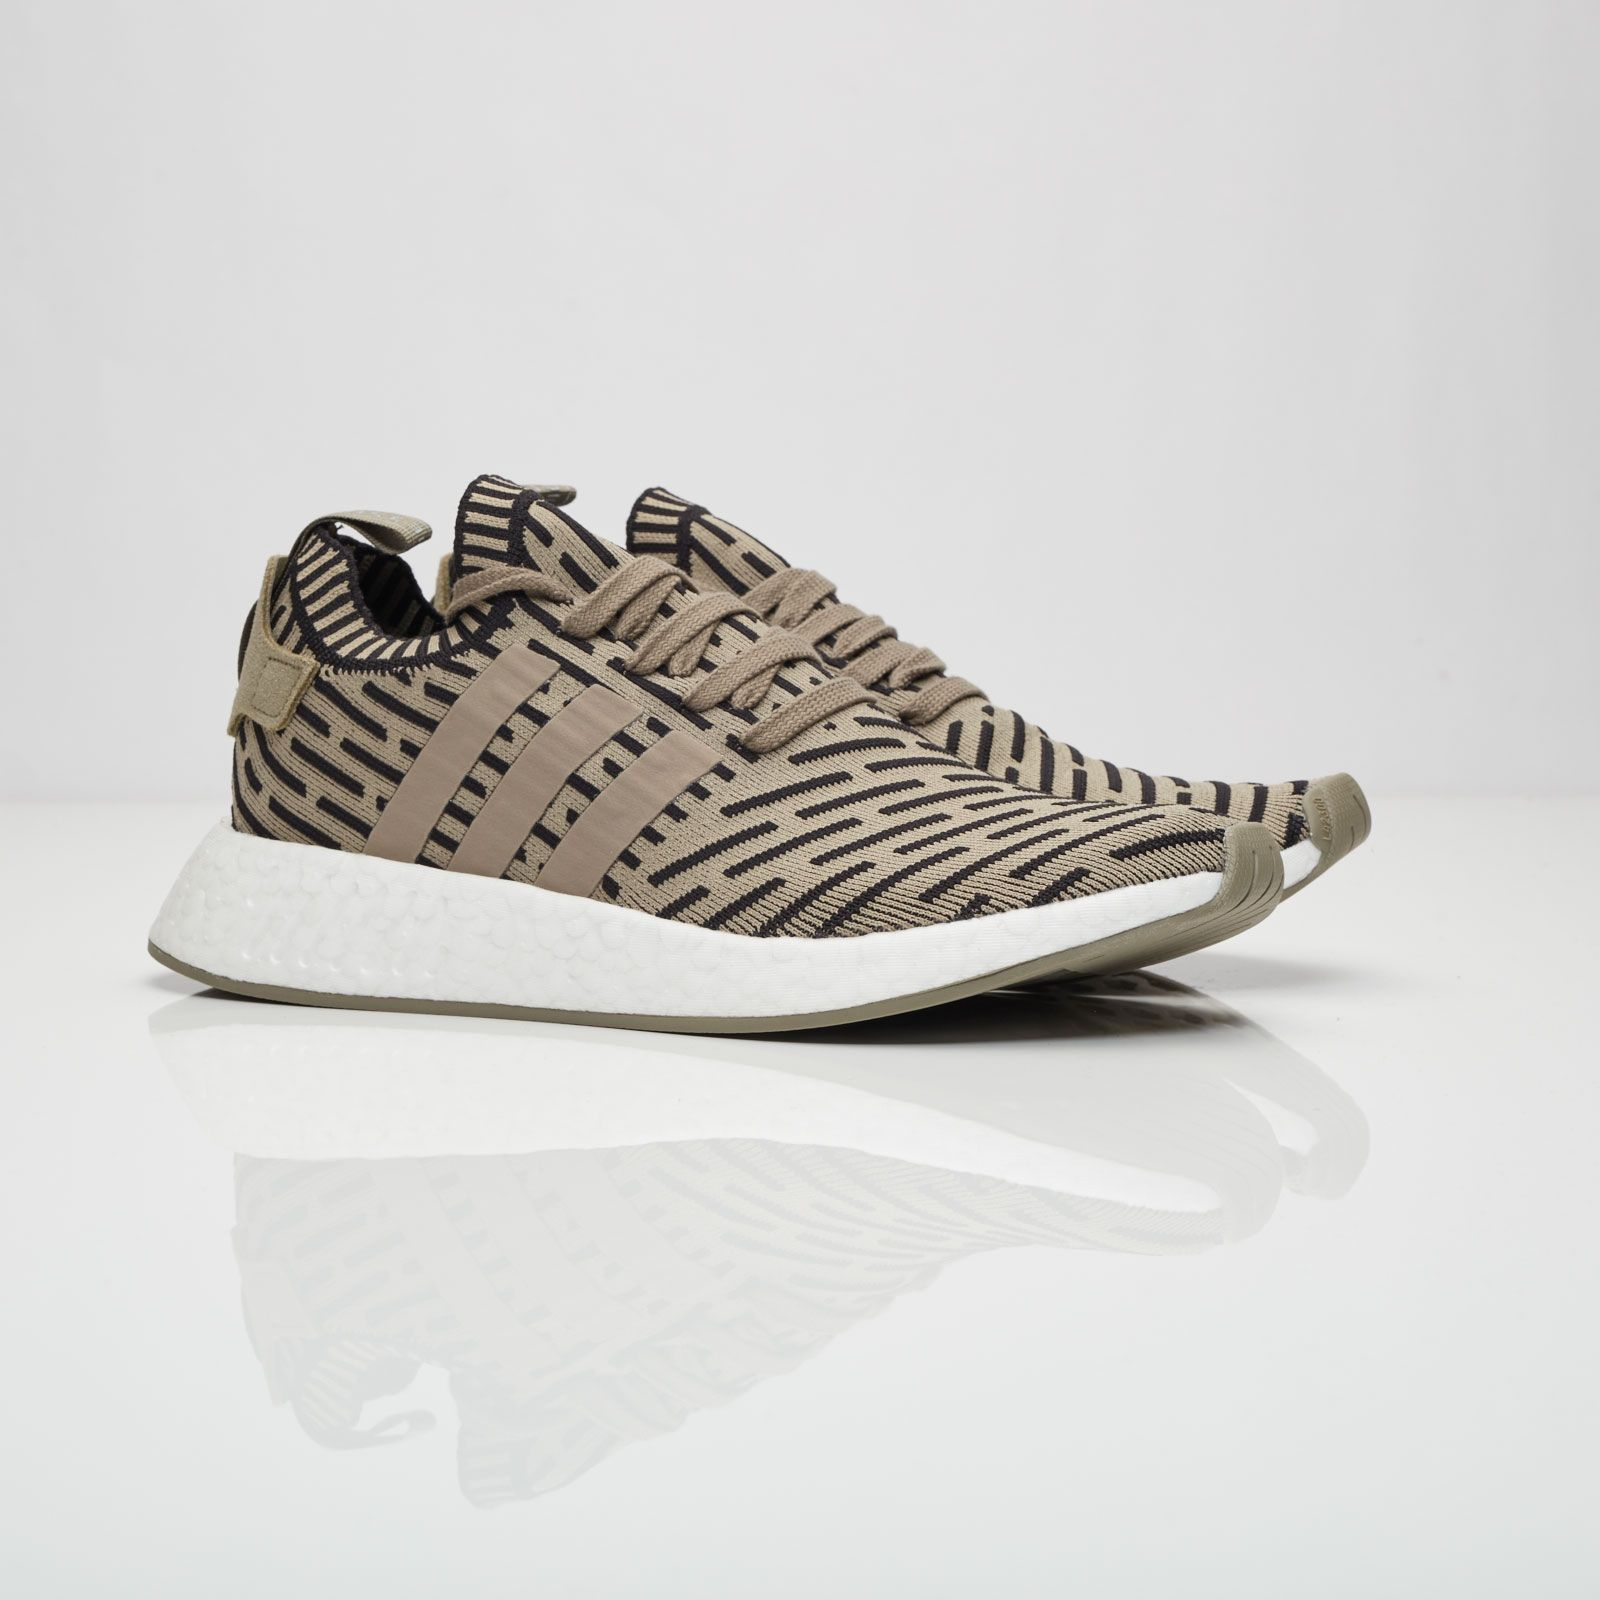 MIDNIGHT ONLINE Adidas #NMD R2 PK Trace Cargo / Core Black Credit :  Sneakersnstuff